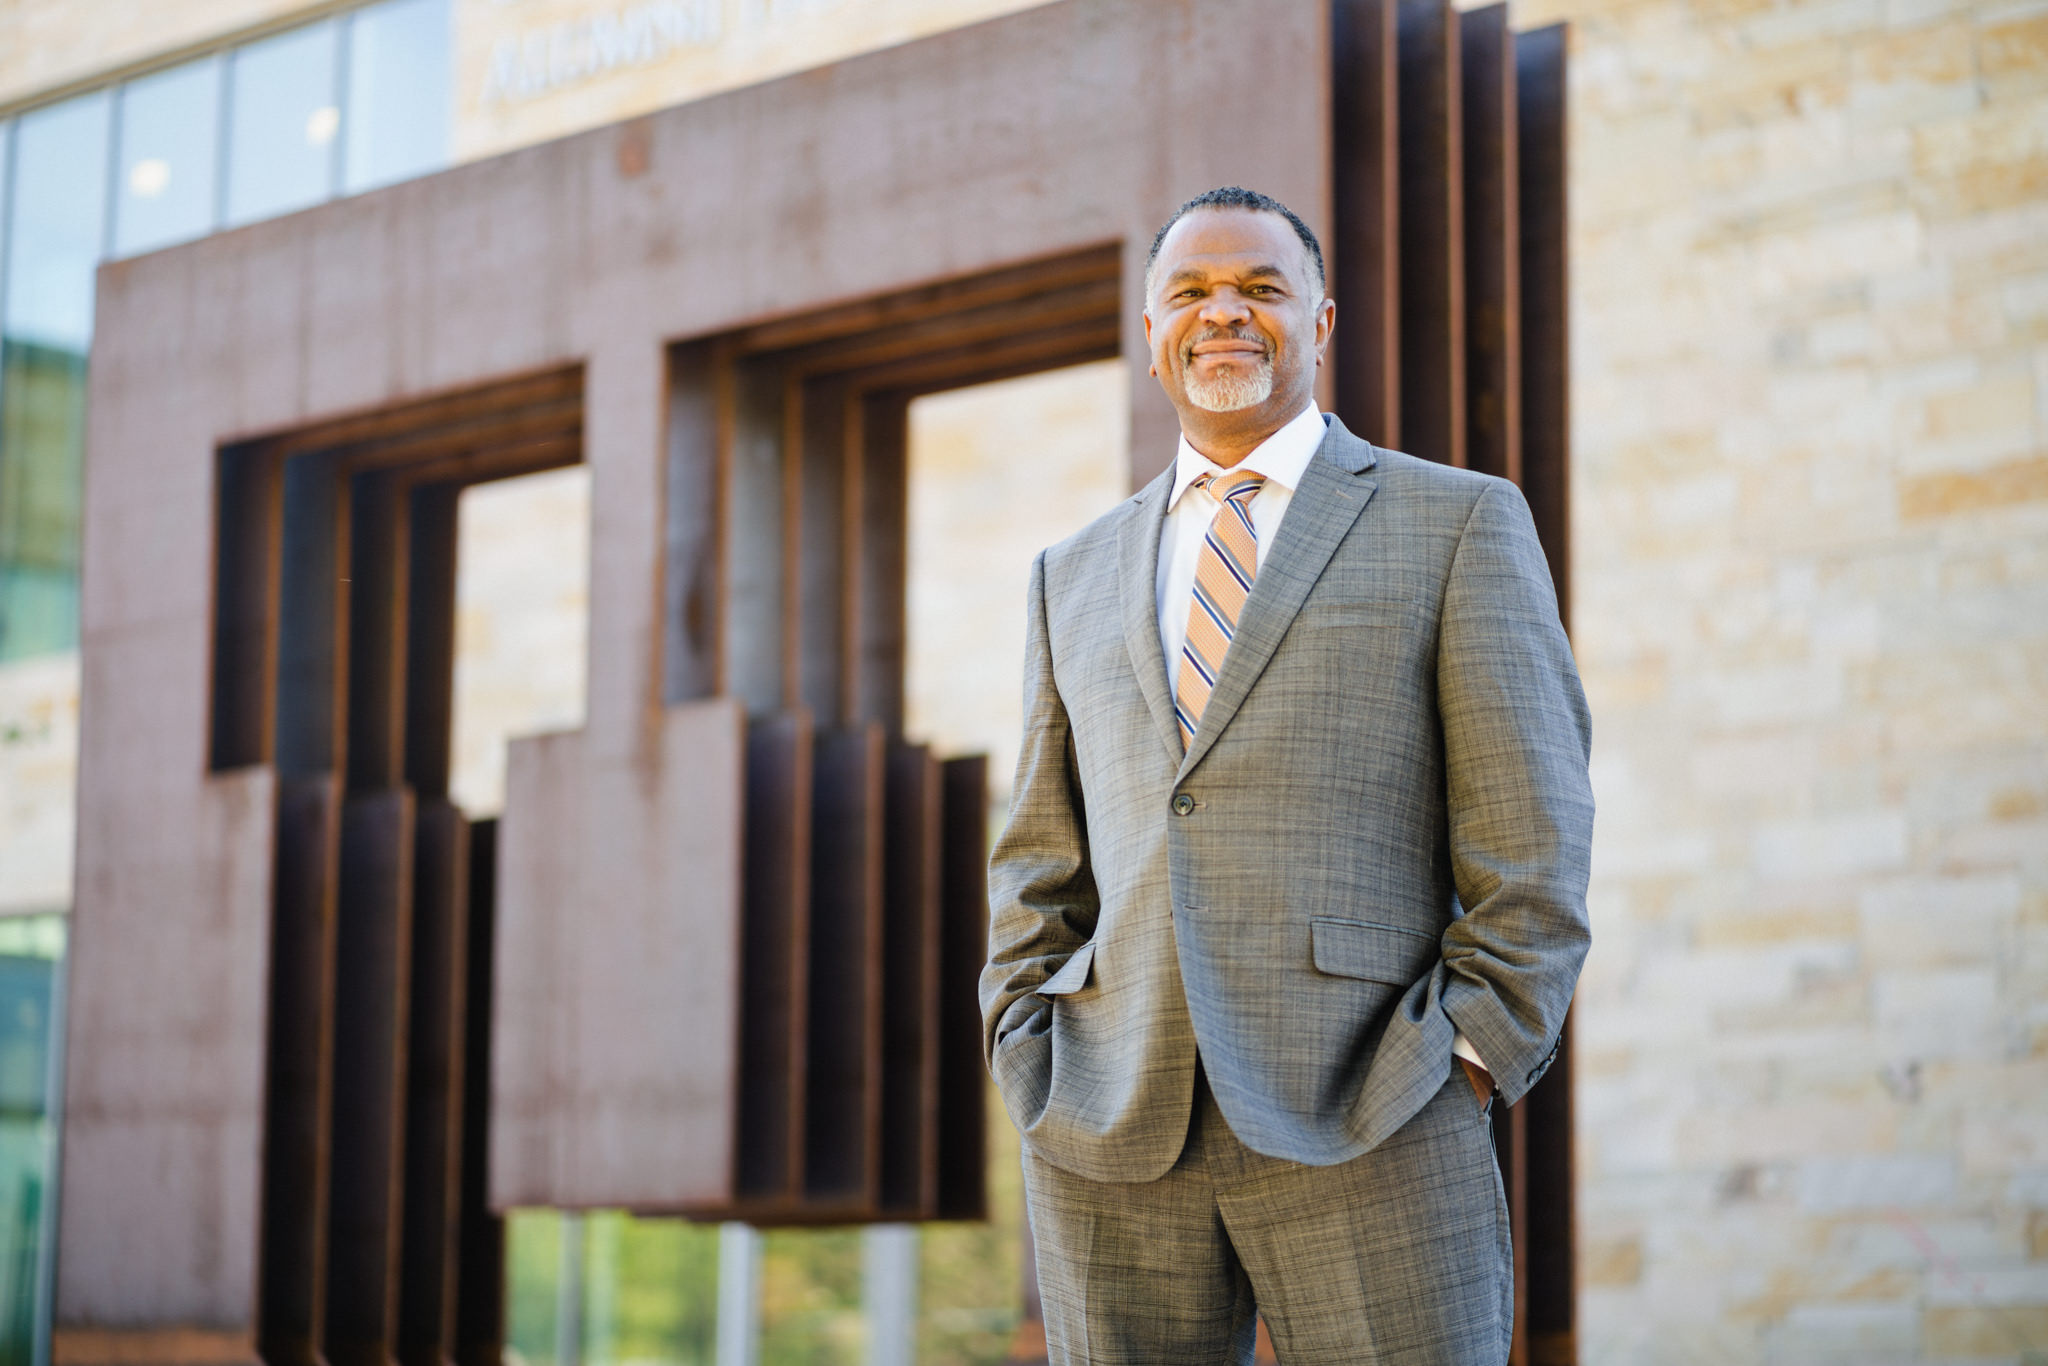 """Martell Teasley, Dean of the College of Social Work, poses in a suit with his hands in his pockets in front of a """"U"""" statue."""